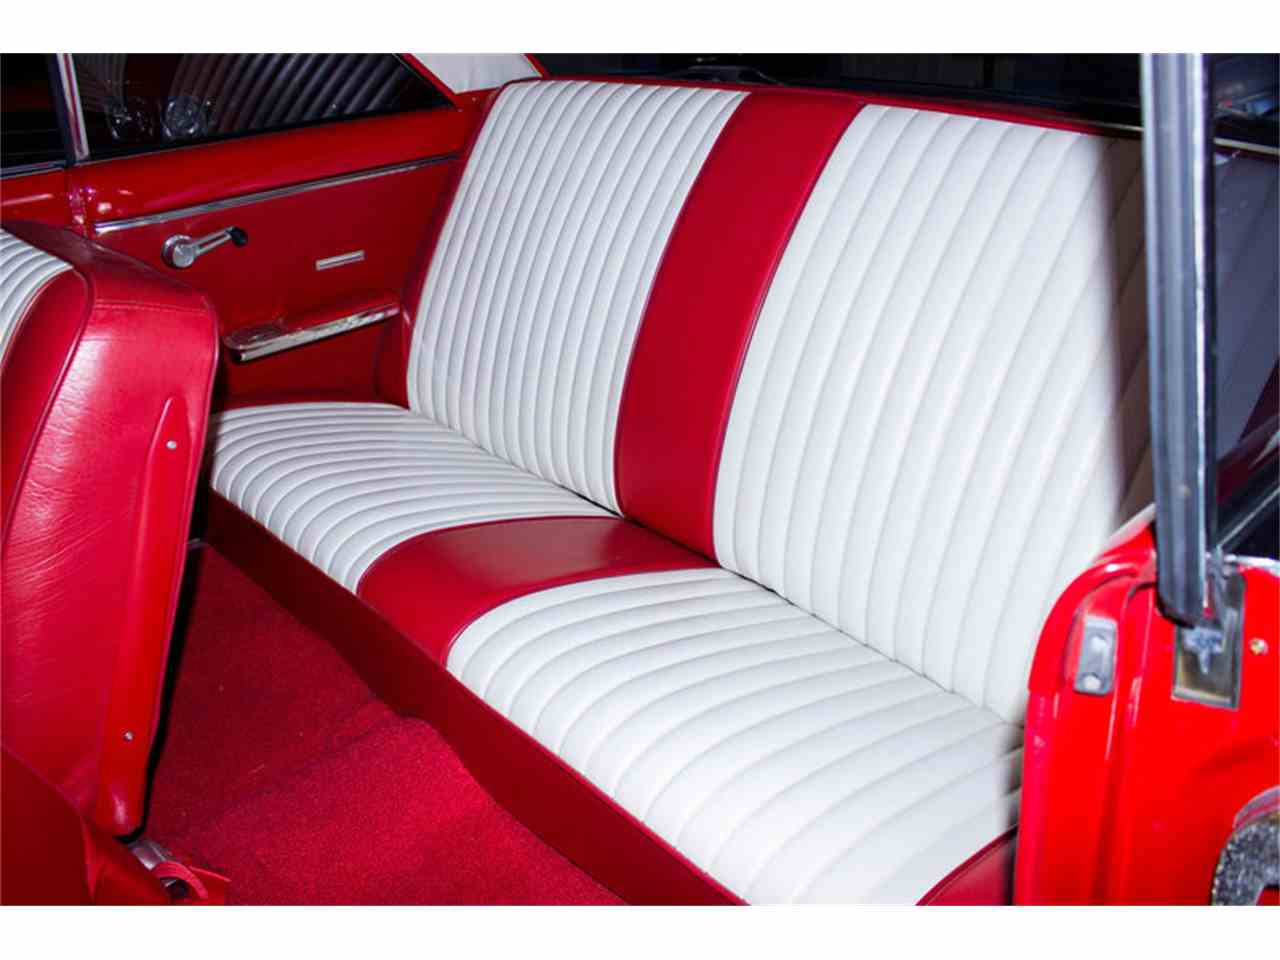 Large Picture of '63 Chevrolet Nova located in Florida - $41,997.00 - M9C9